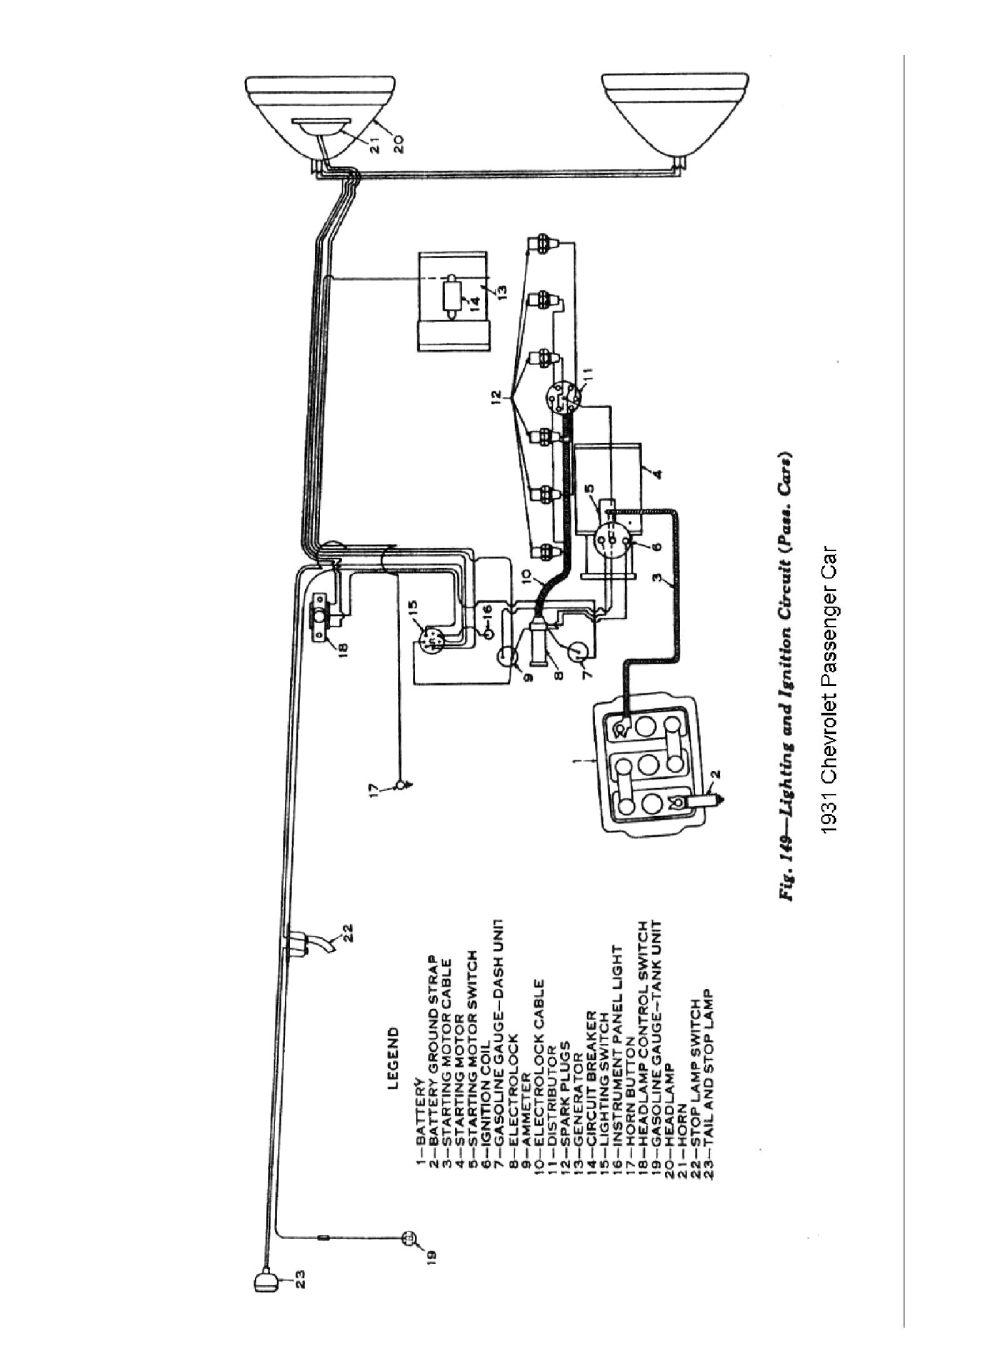 medium resolution of chevy wiring diagrams 2006 buick 3800 engine diagram 2006 buick 3800 engine diagram